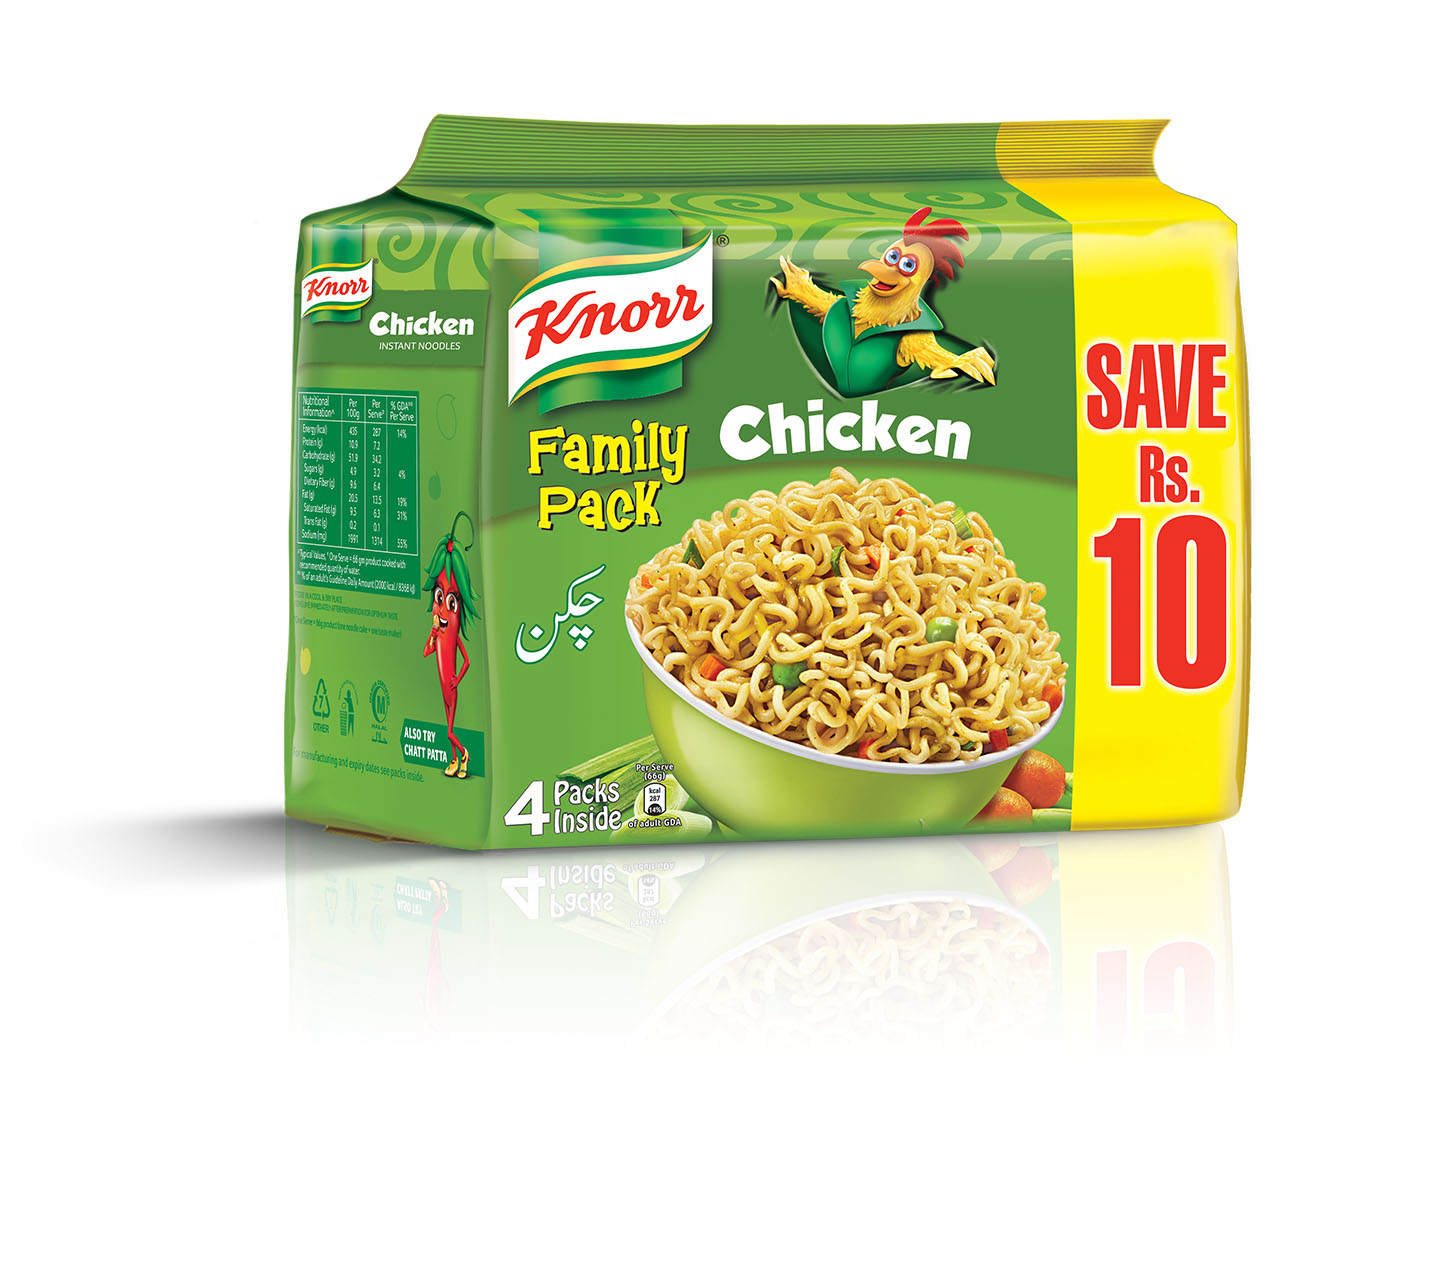 Knorr Product